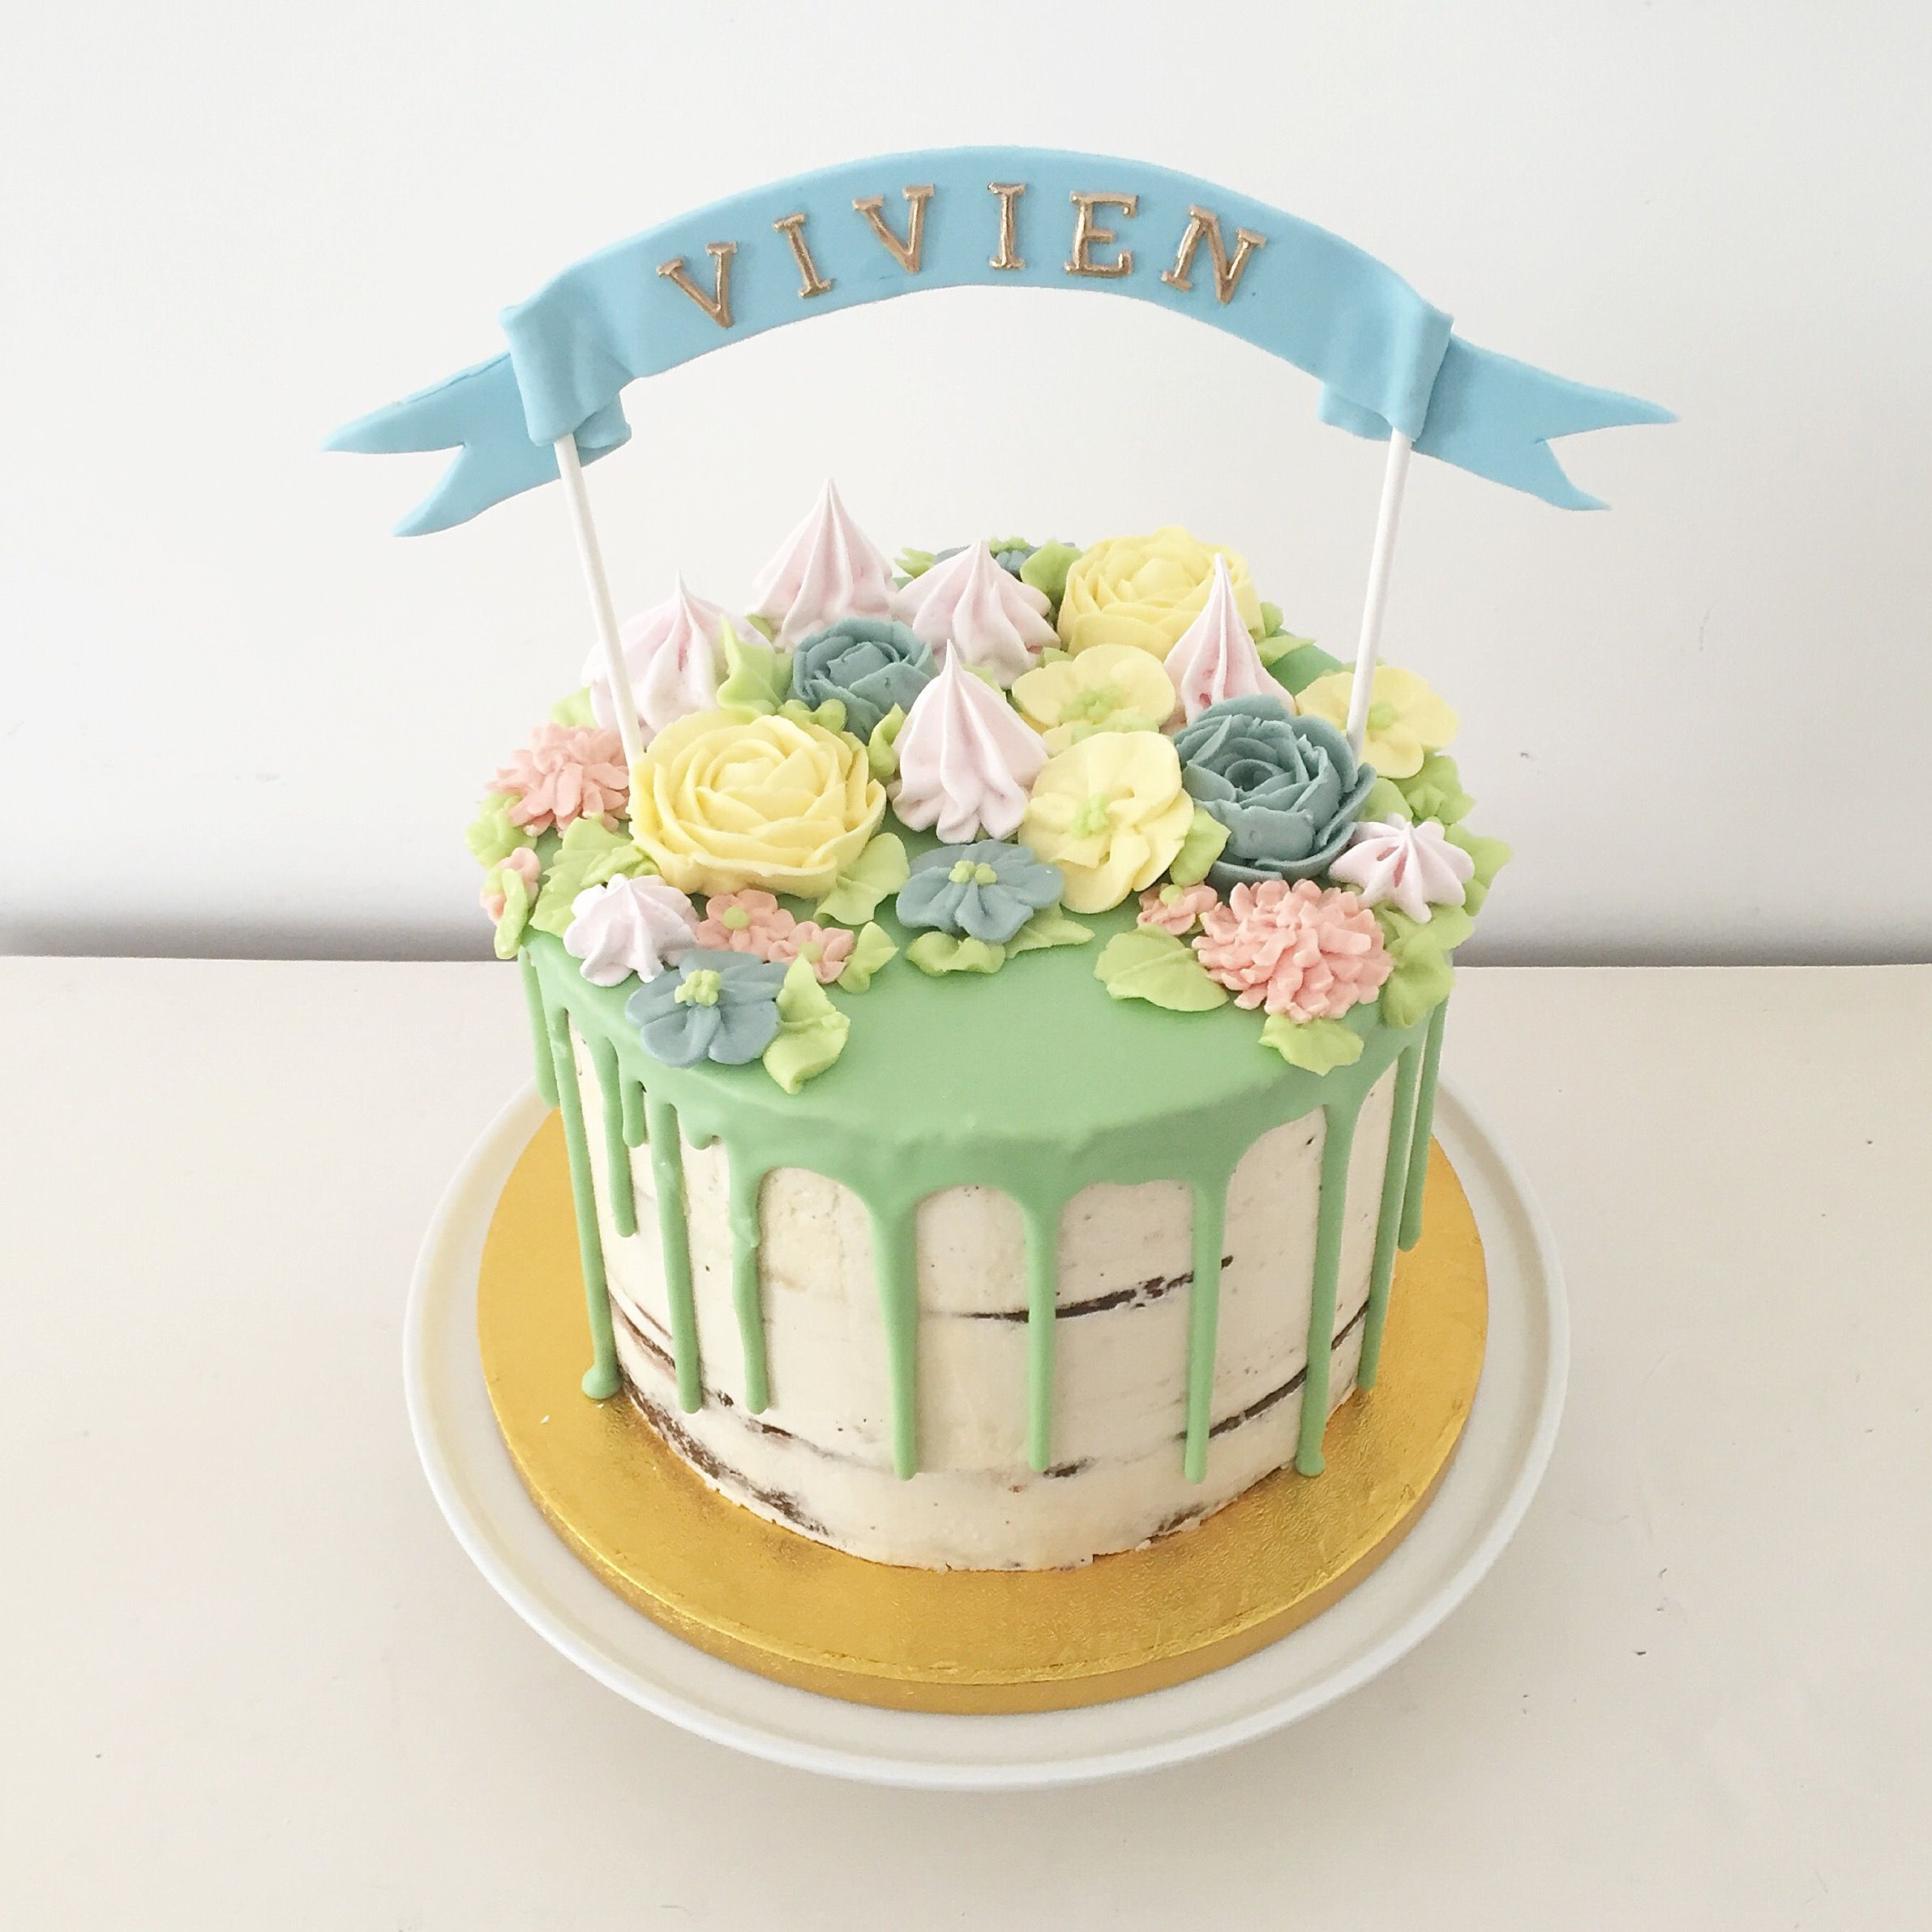 Buttercream flowers seminaked birthday cake with ribbon name topper